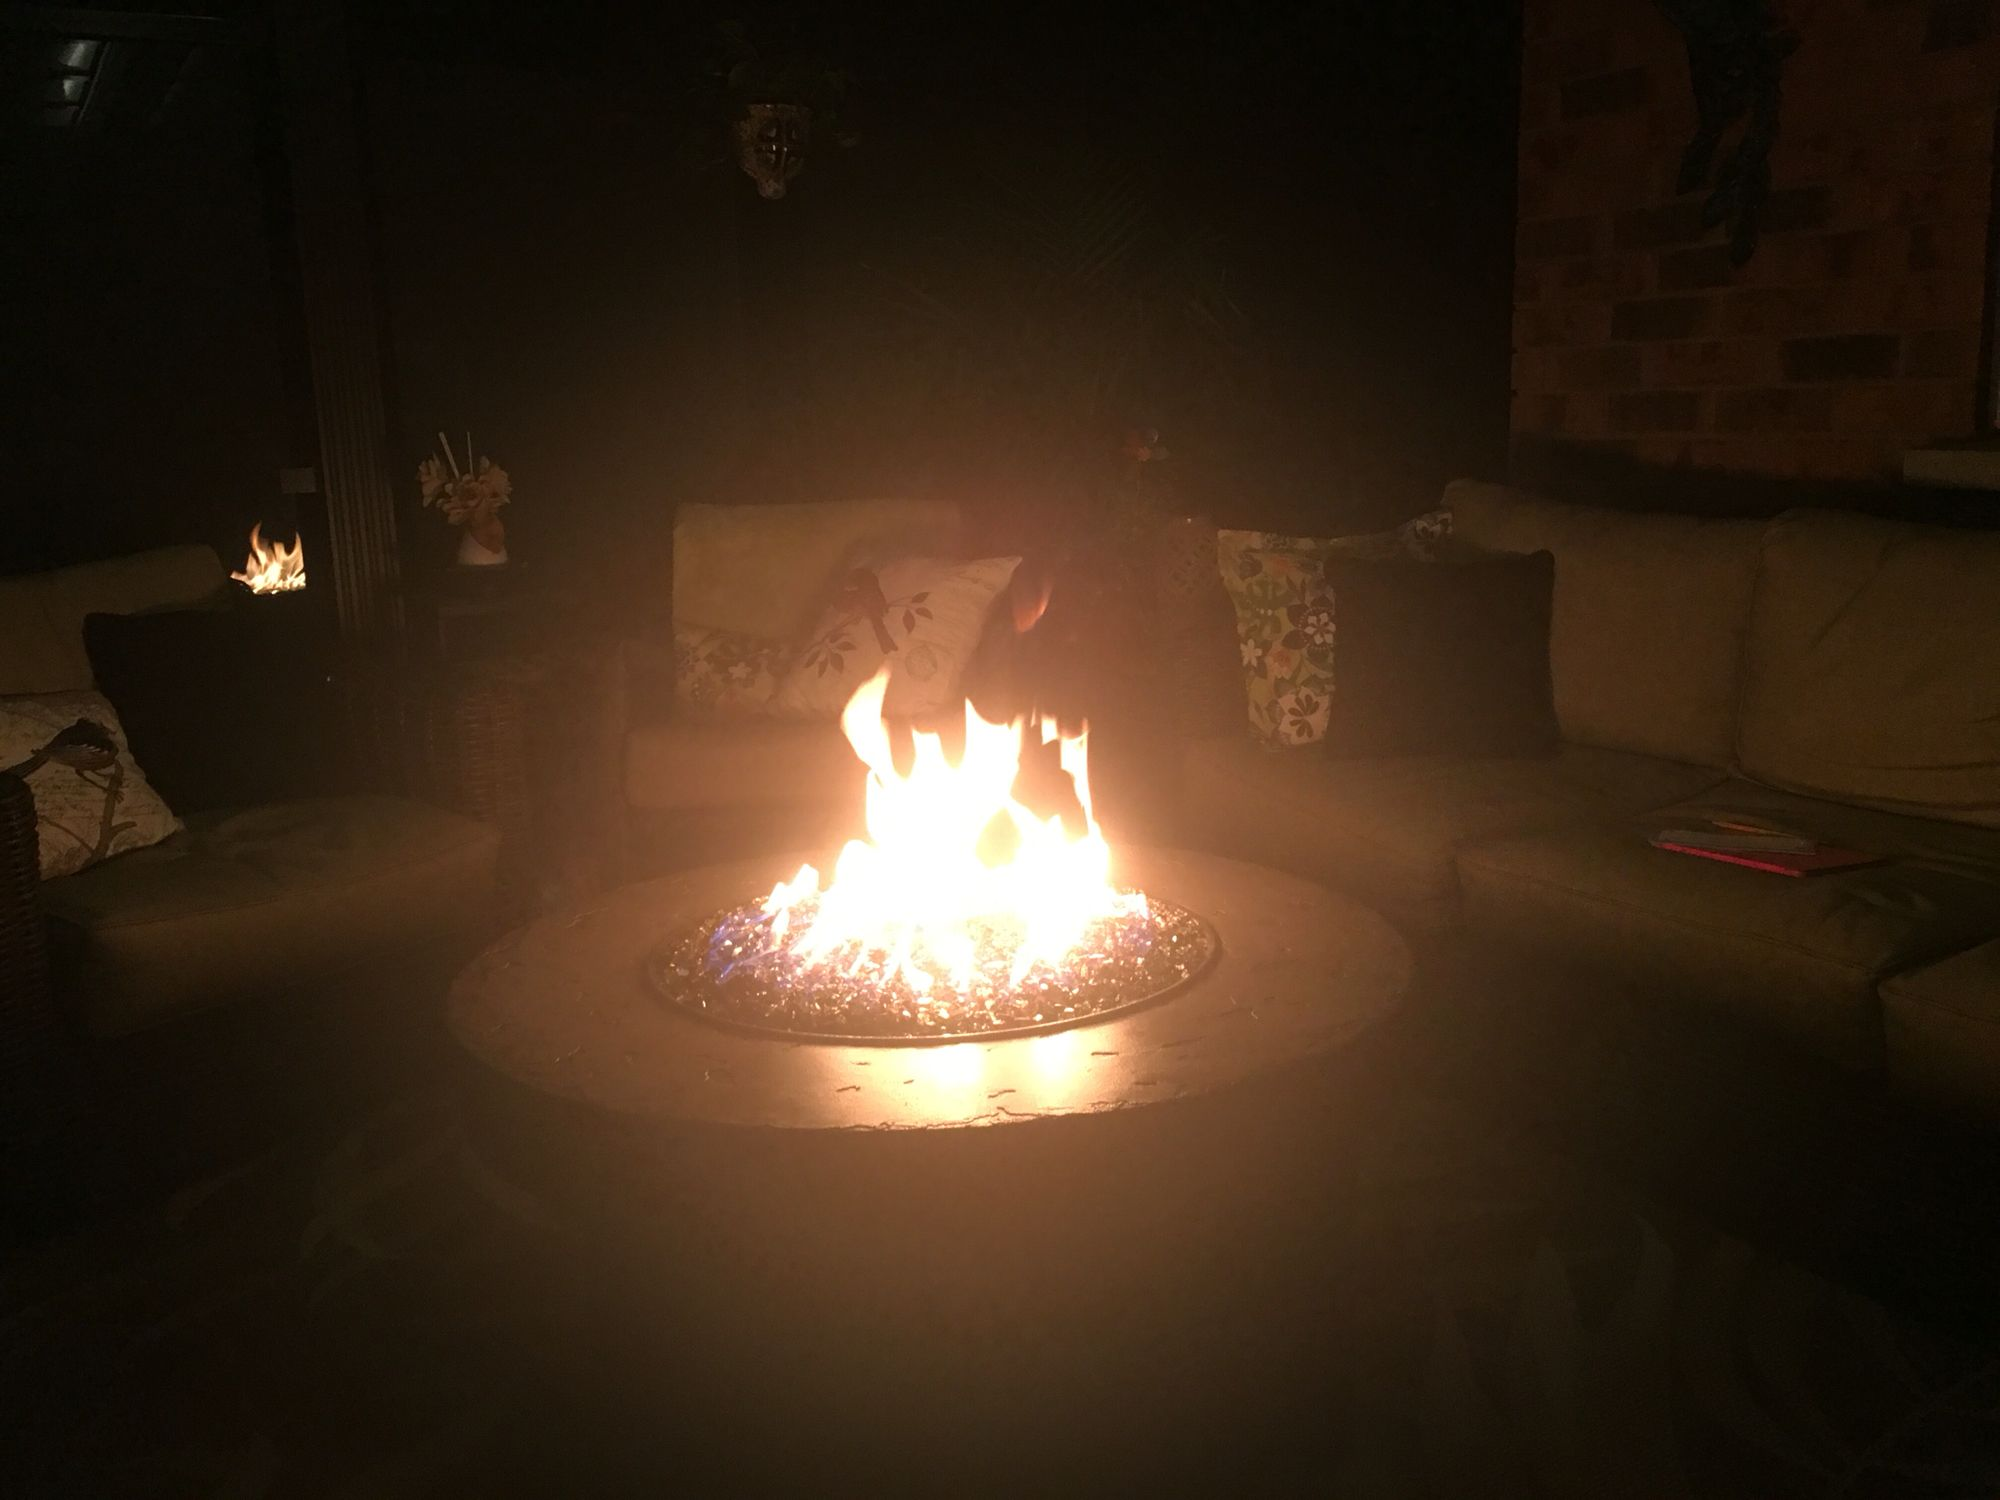 Fire pit roaring strong